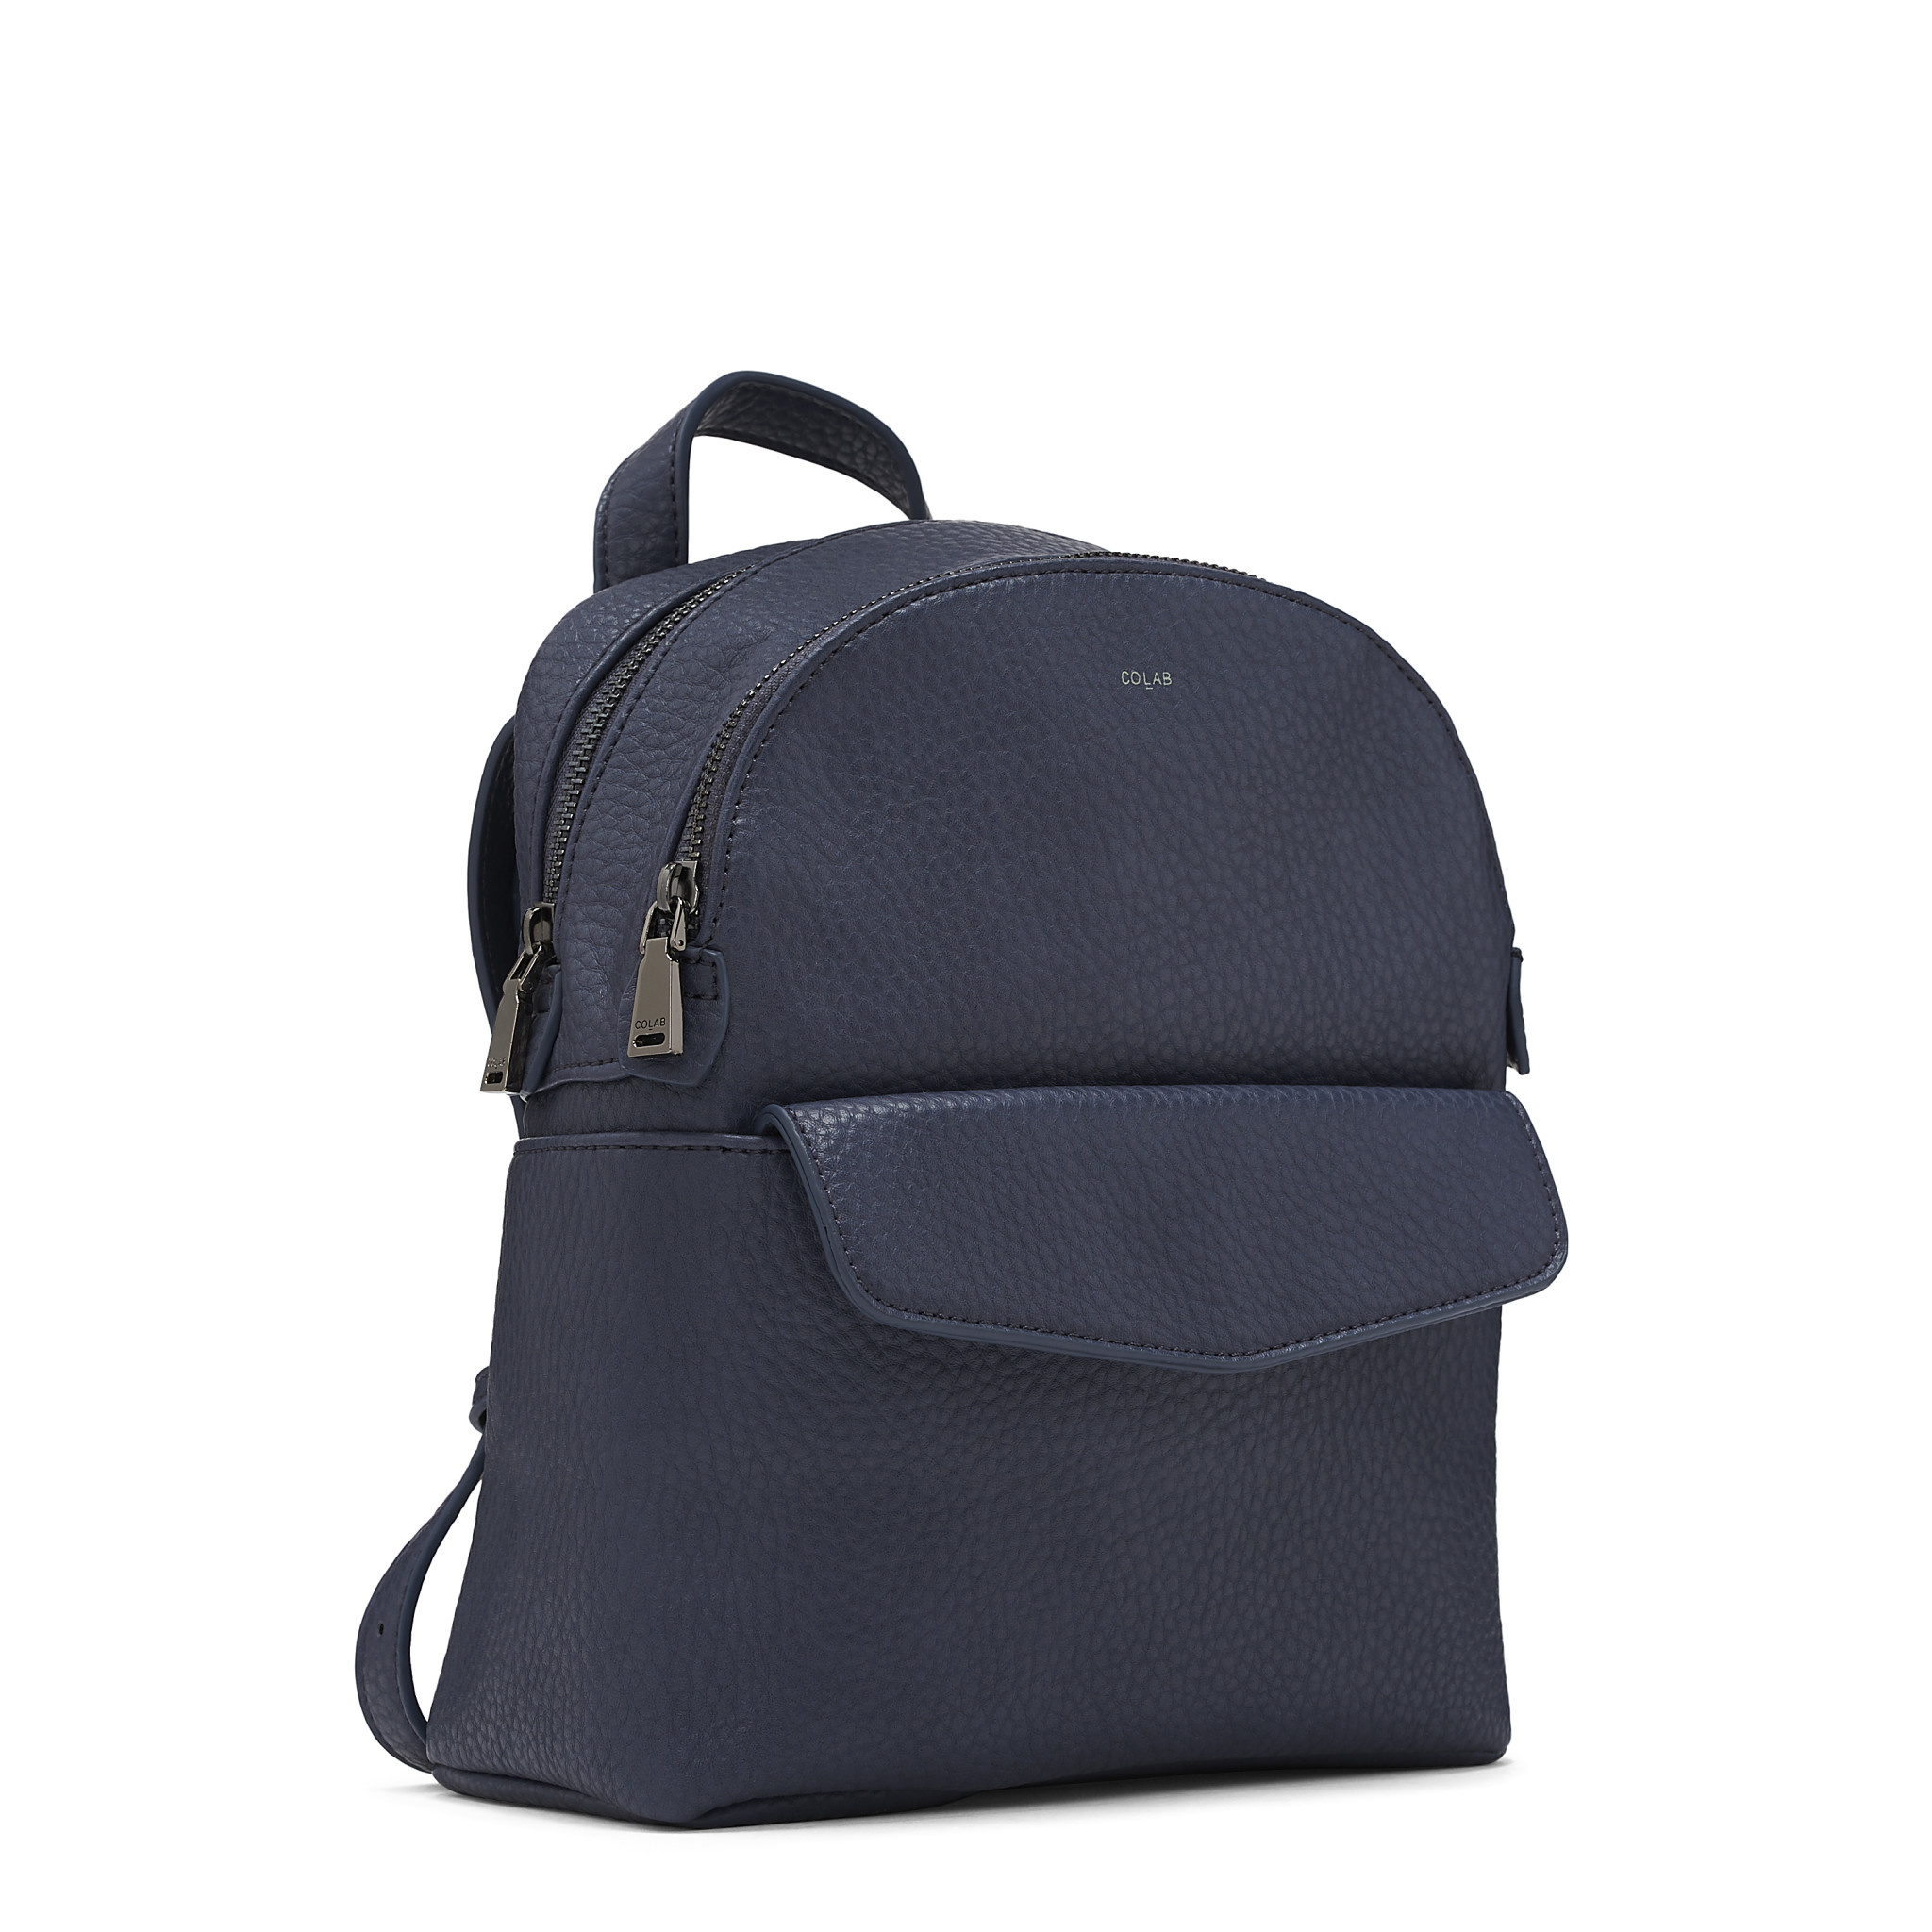 Colab Colab Pebble P.U. Mini Backpack (#6336) - Blue Bay